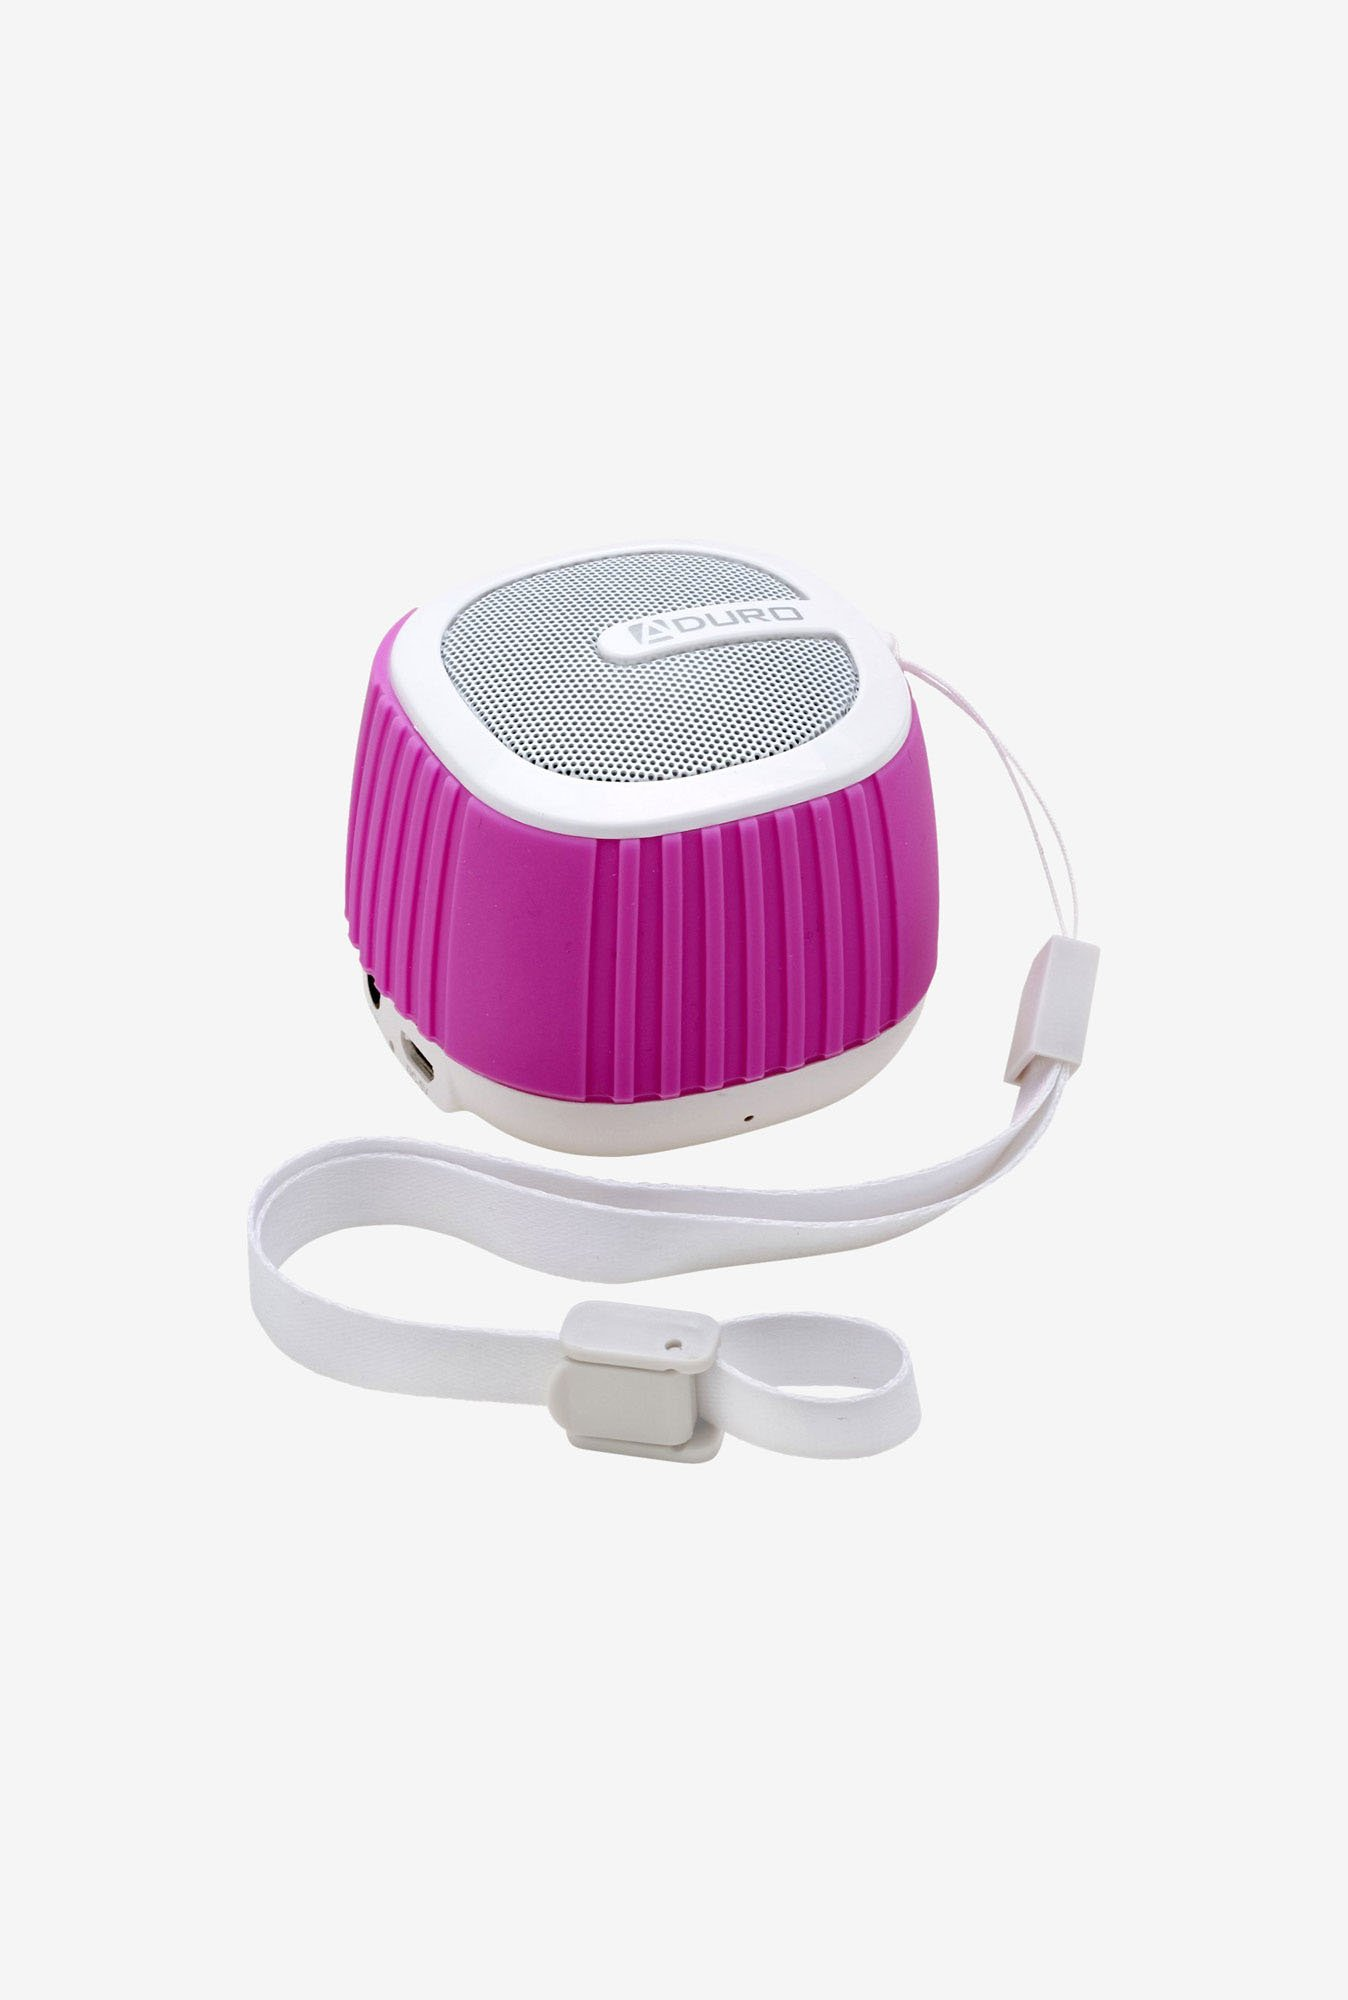 Aduro VST-BSP08 Bluetooth Speaker (Pink& White)